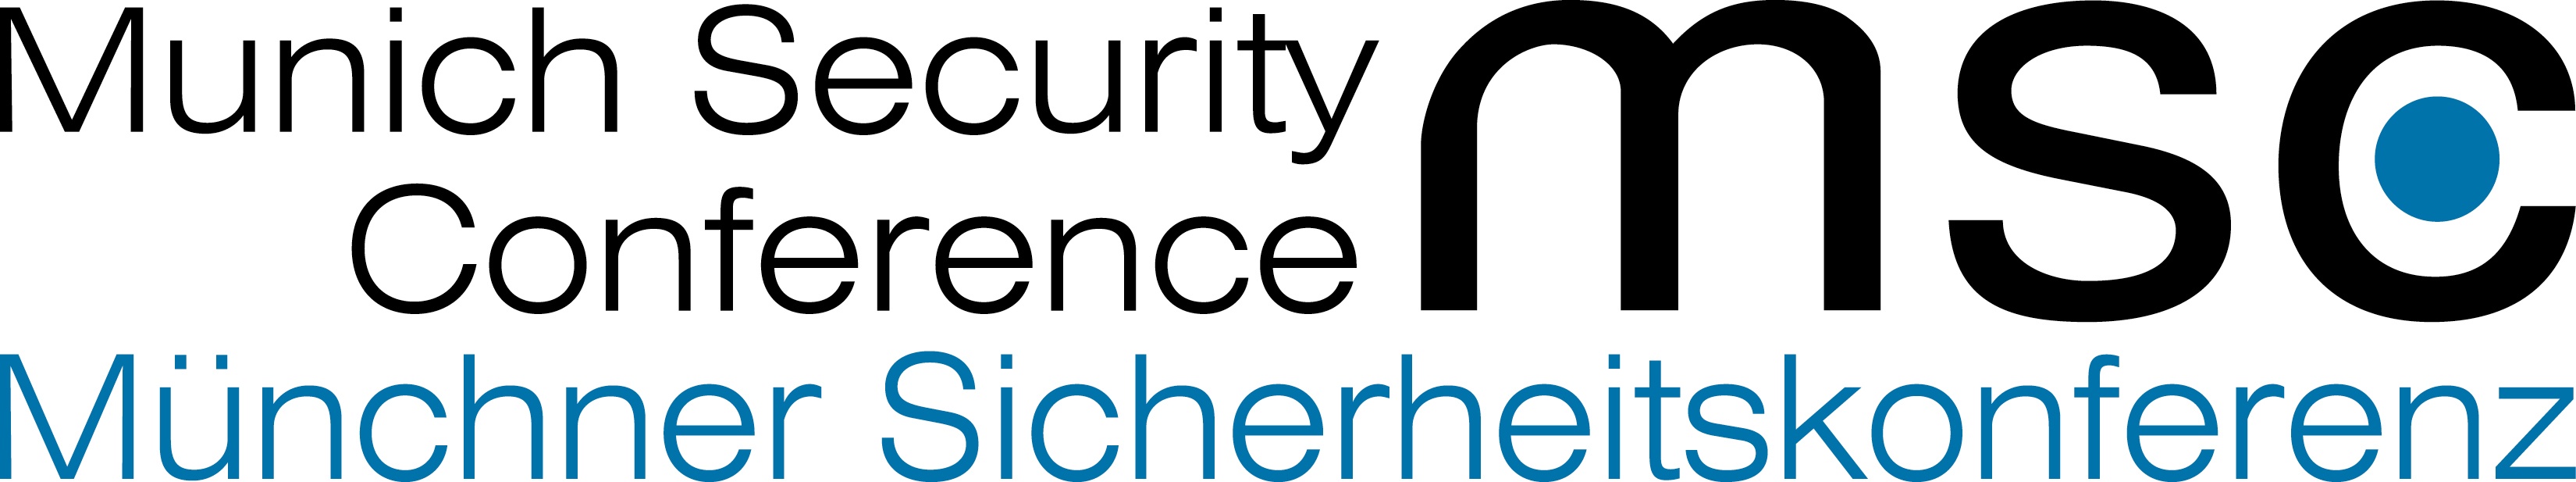 Munich Security Conference Logo